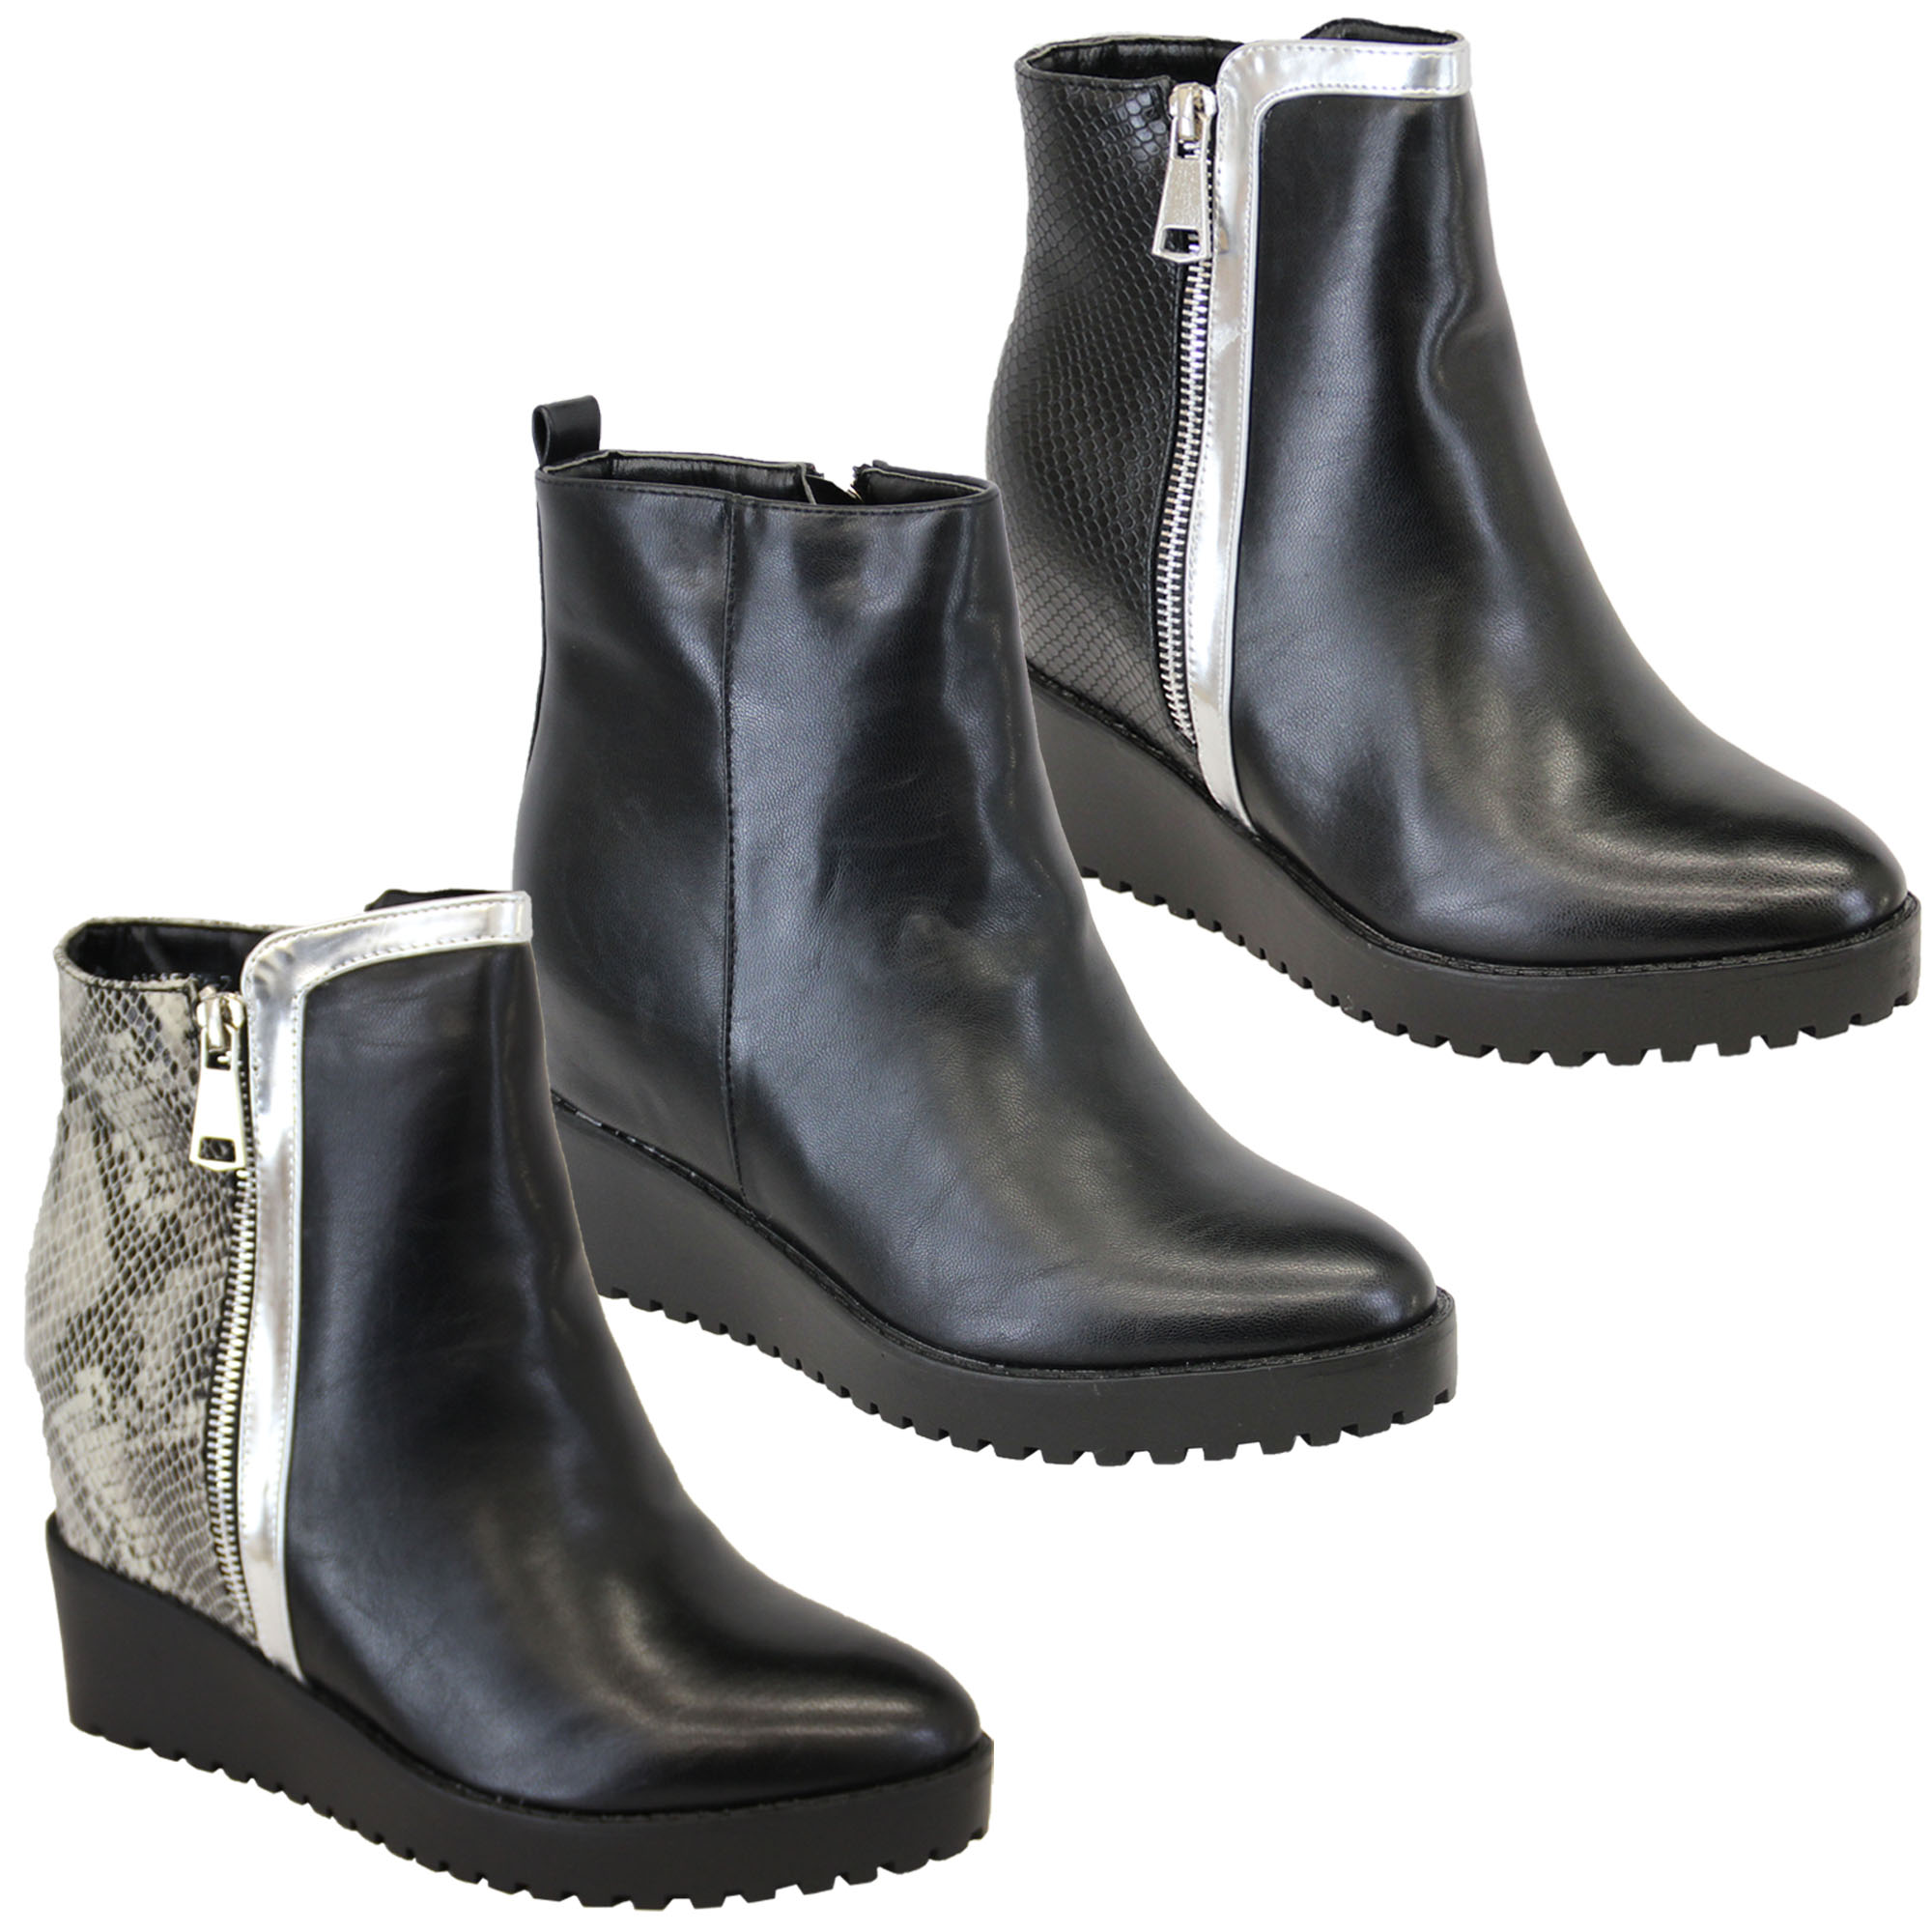 ea72cb6a7cc2 Ladies Boots Kelsi Womens High Top Wedge Ankle Leather Look Shoes Snake  Effect